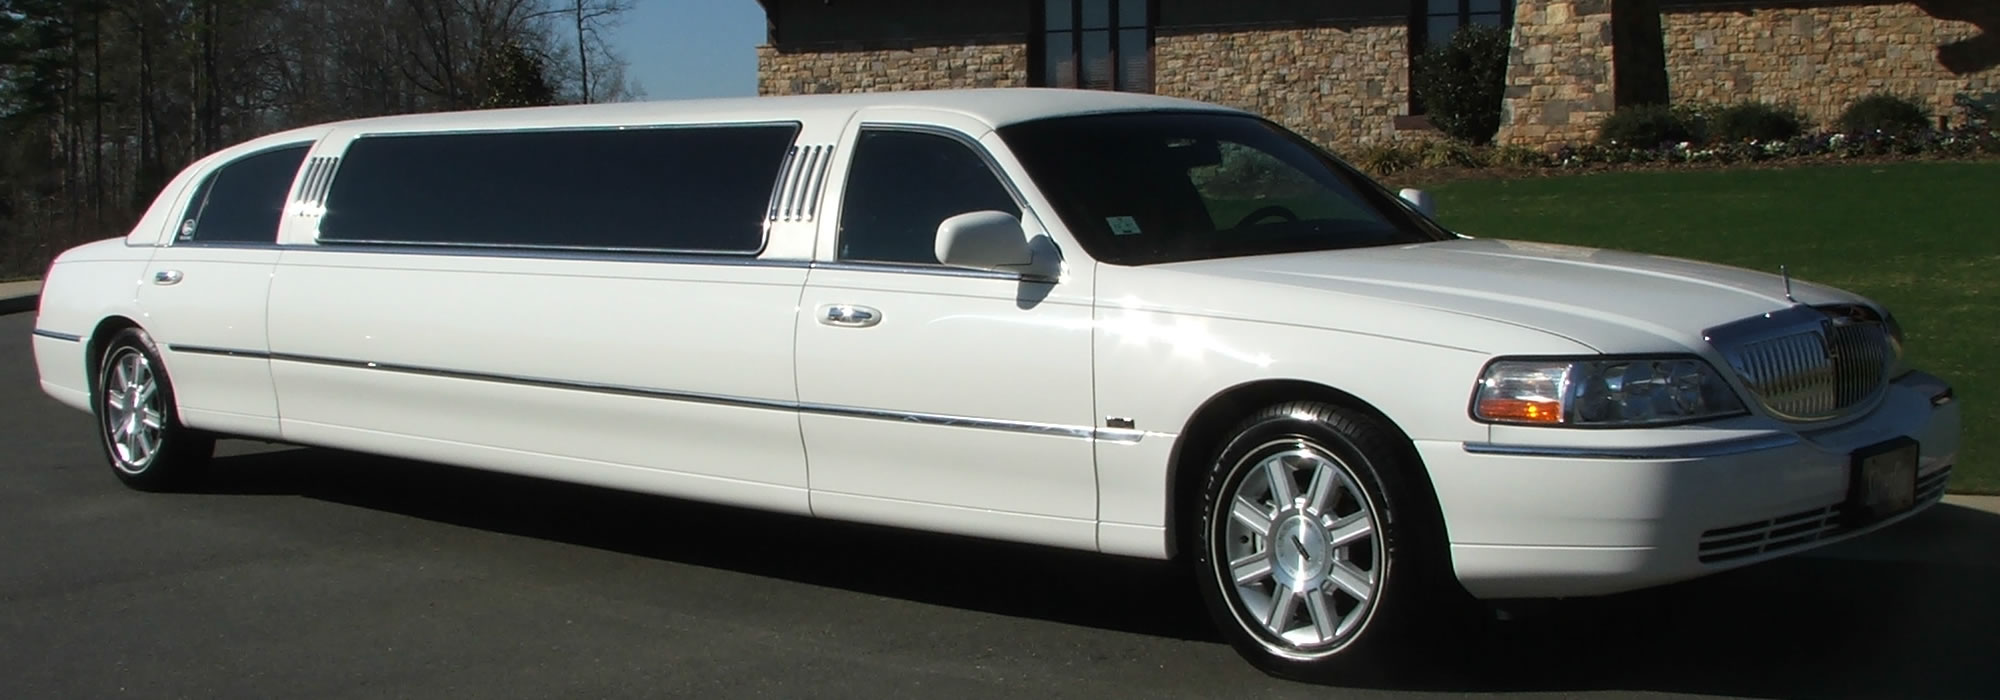 Limo hire Heathrow